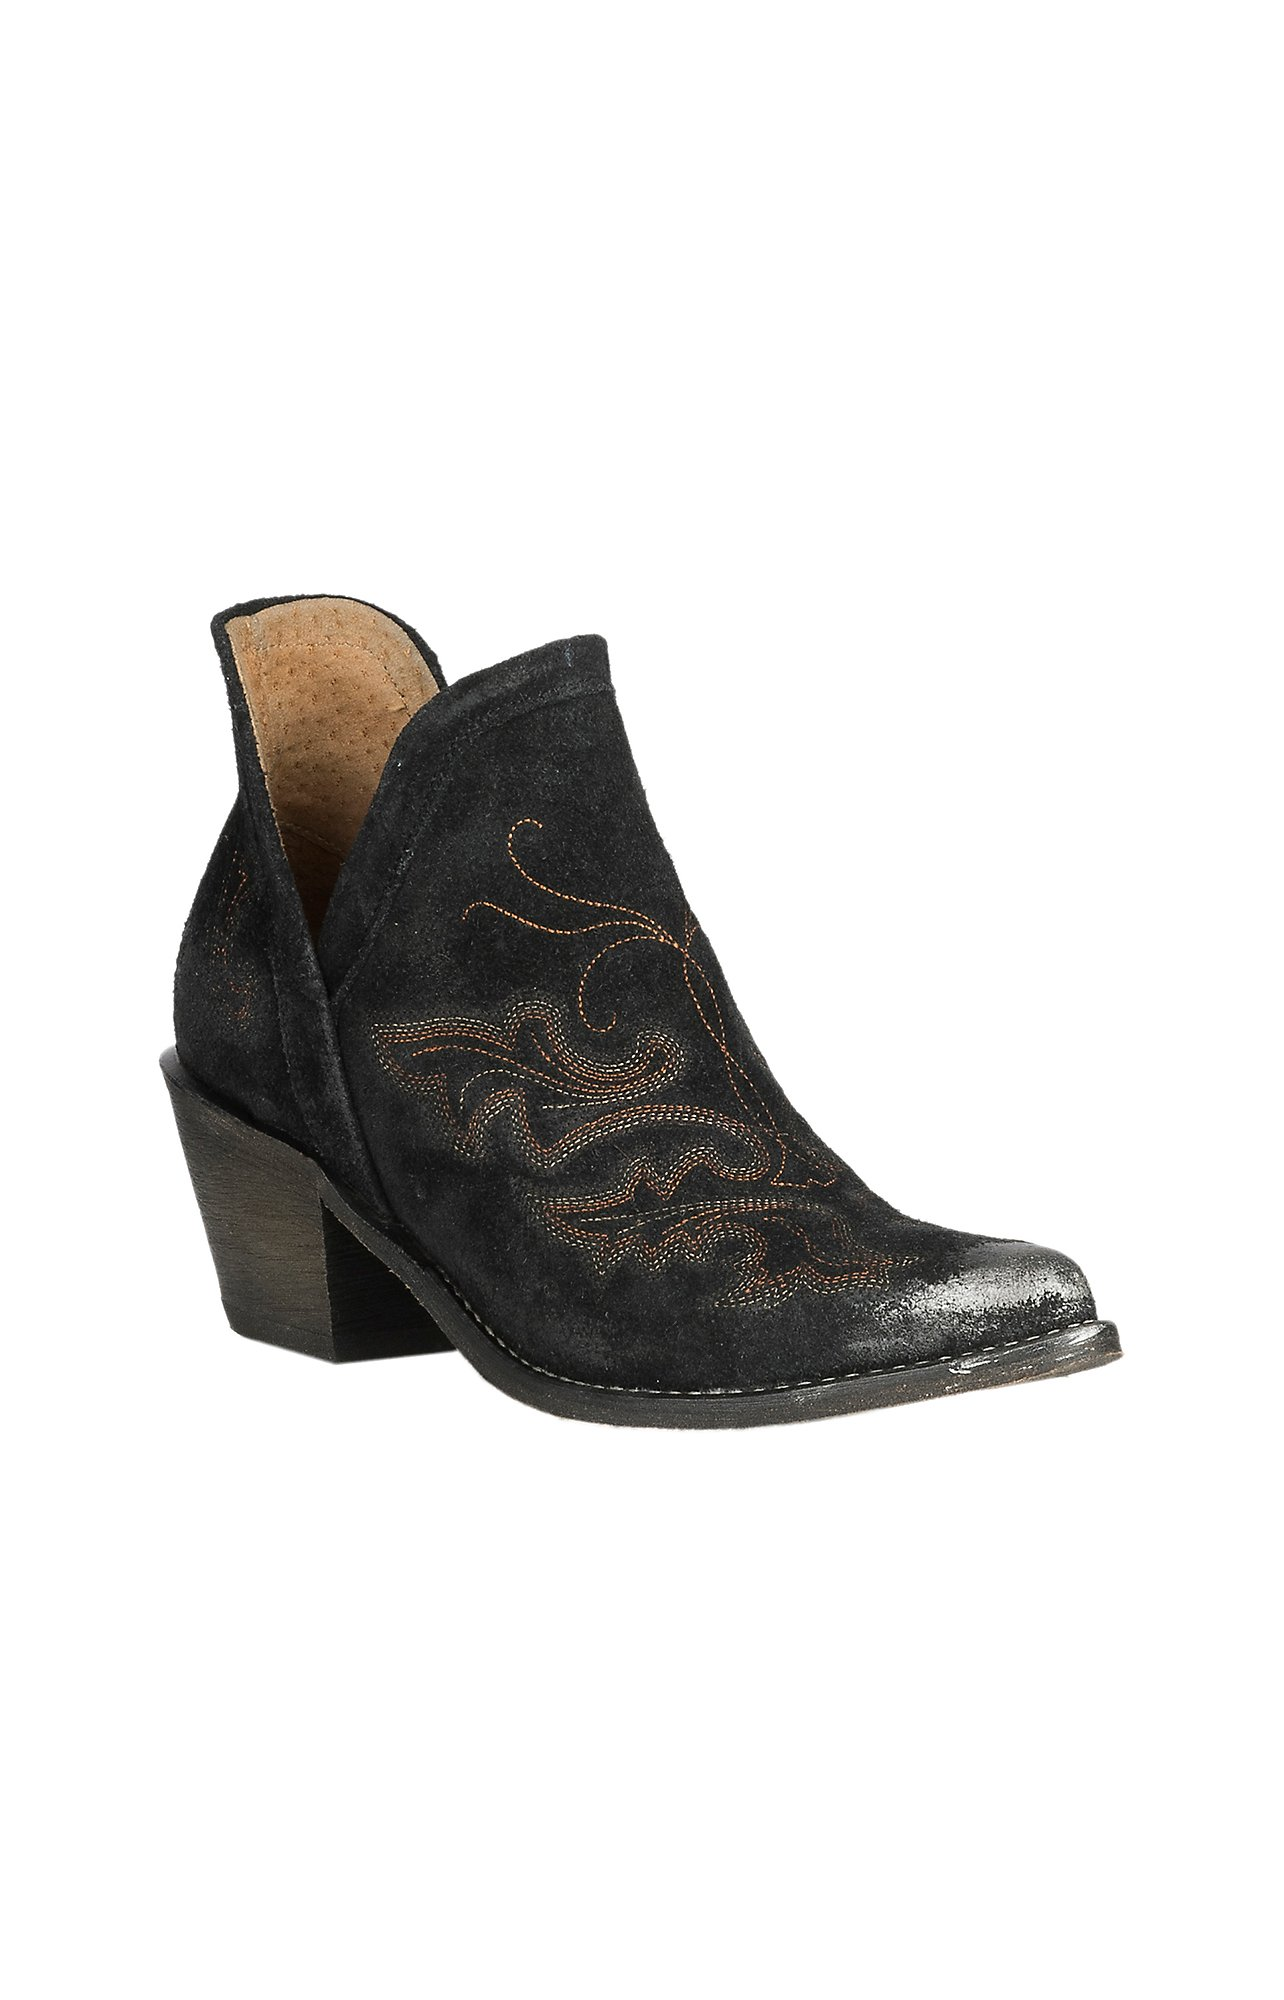 Circle G by Corral Women's Black Embroidered Round Toe Bootie